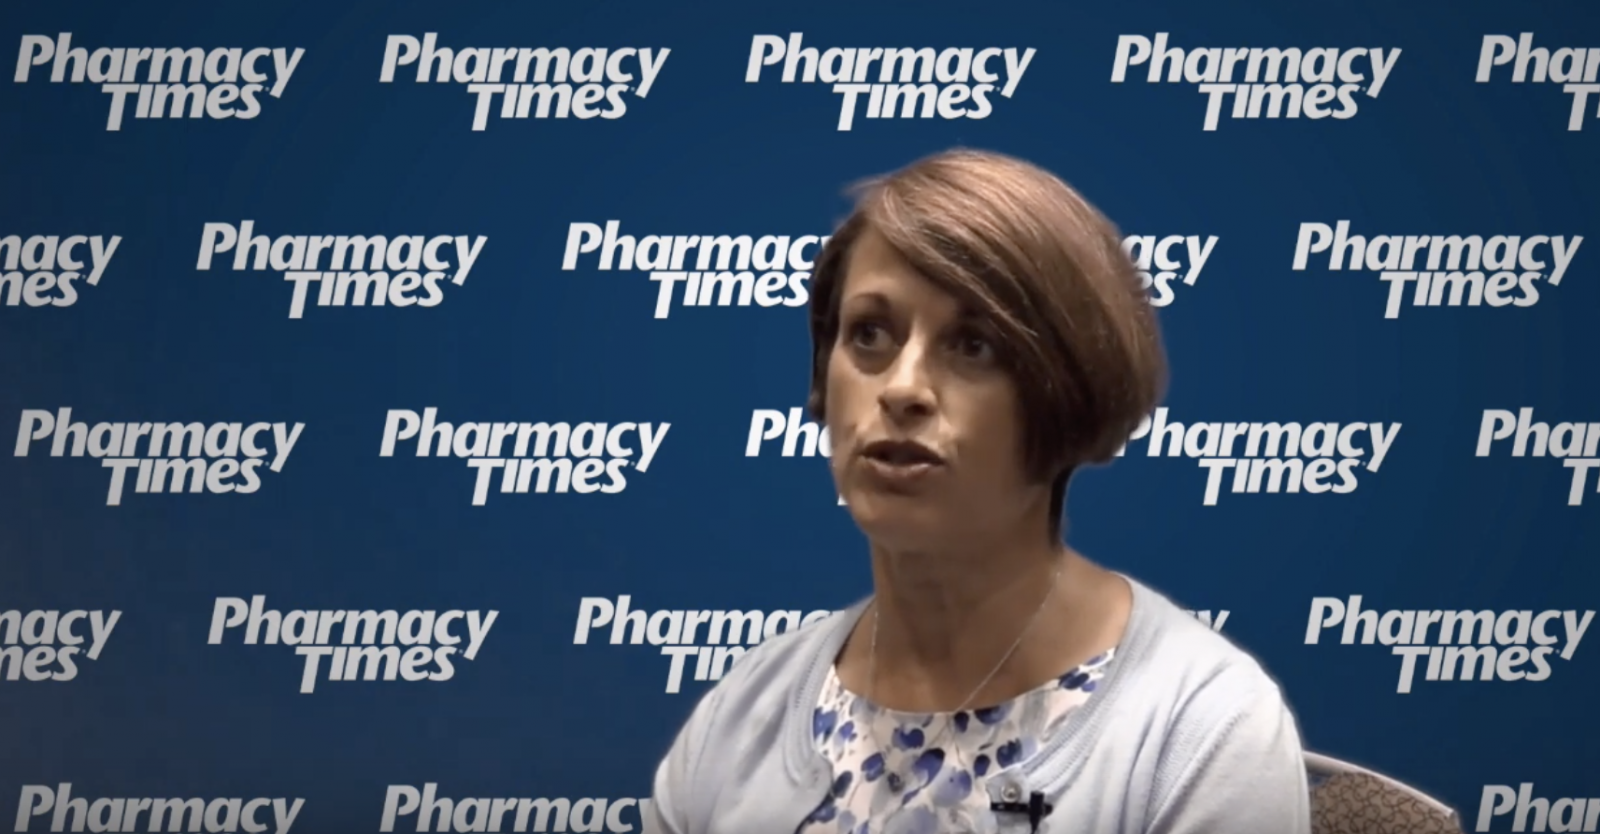 Educating Pharmacy Students on Pharmacogenetics and Pharmacogenomics